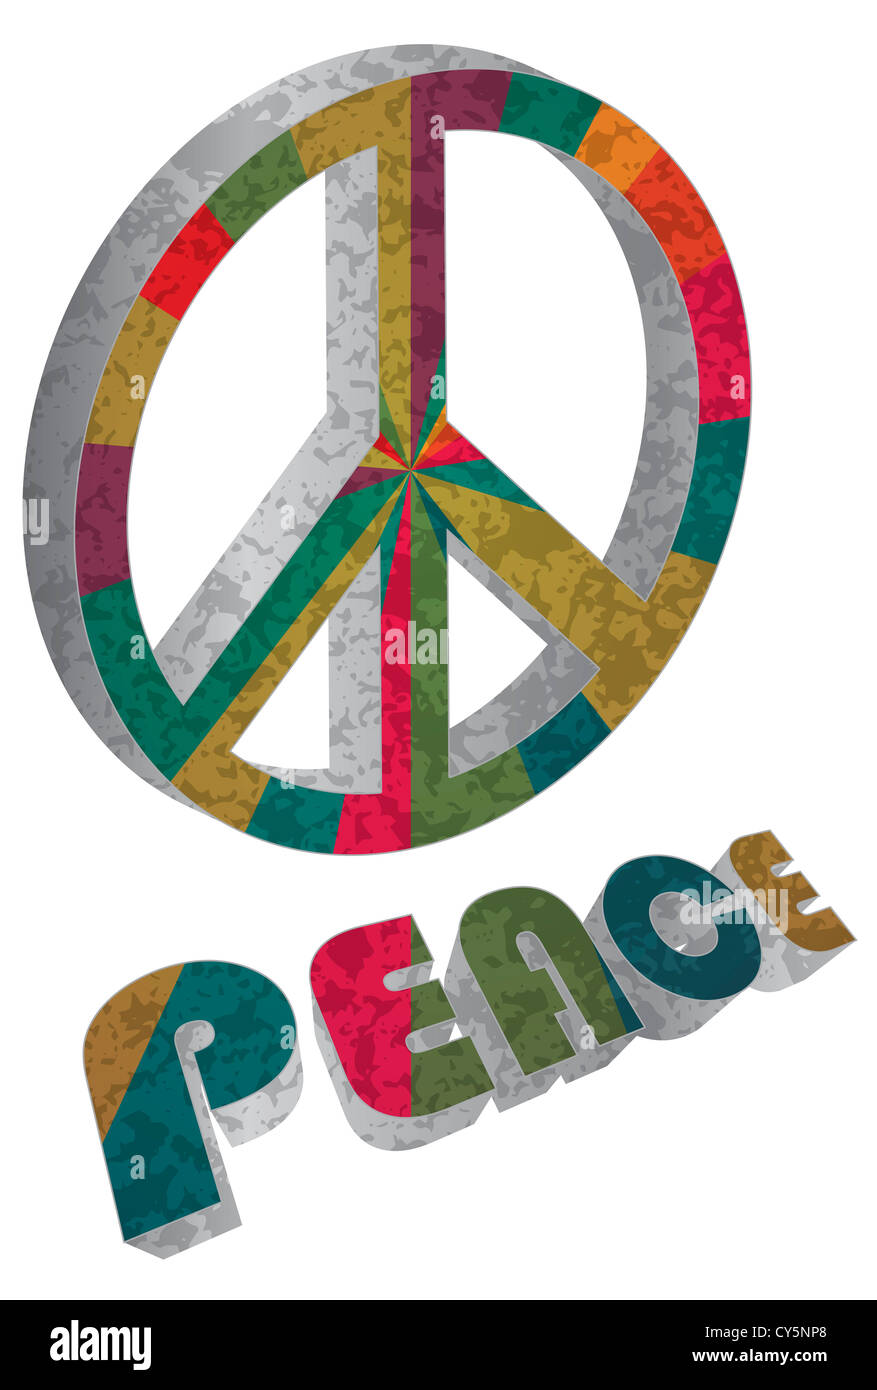 Retro Colorful Peace Symbol Text Stock Photos Retro Colorful Peace